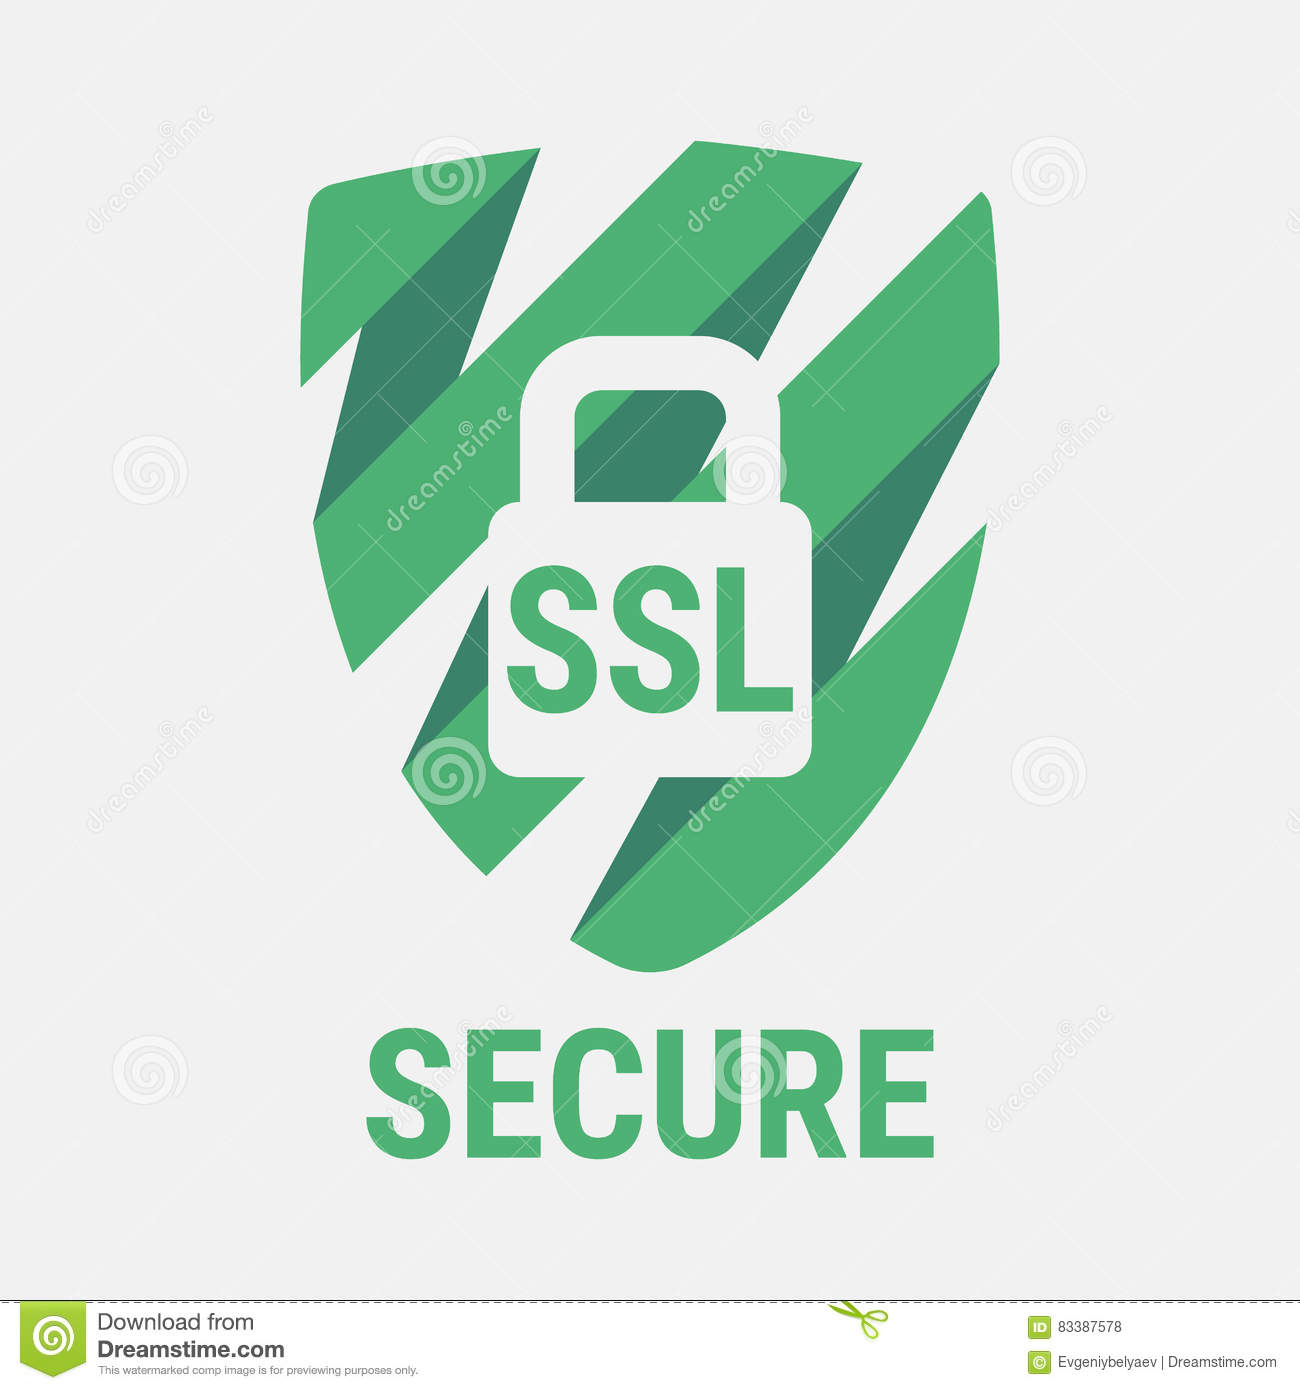 Global ssl security icon safe and secure web sites on the global ssl security icon safe and secure web sites on the internet ssl certificate for the site advantage tls closed xflitez Image collections